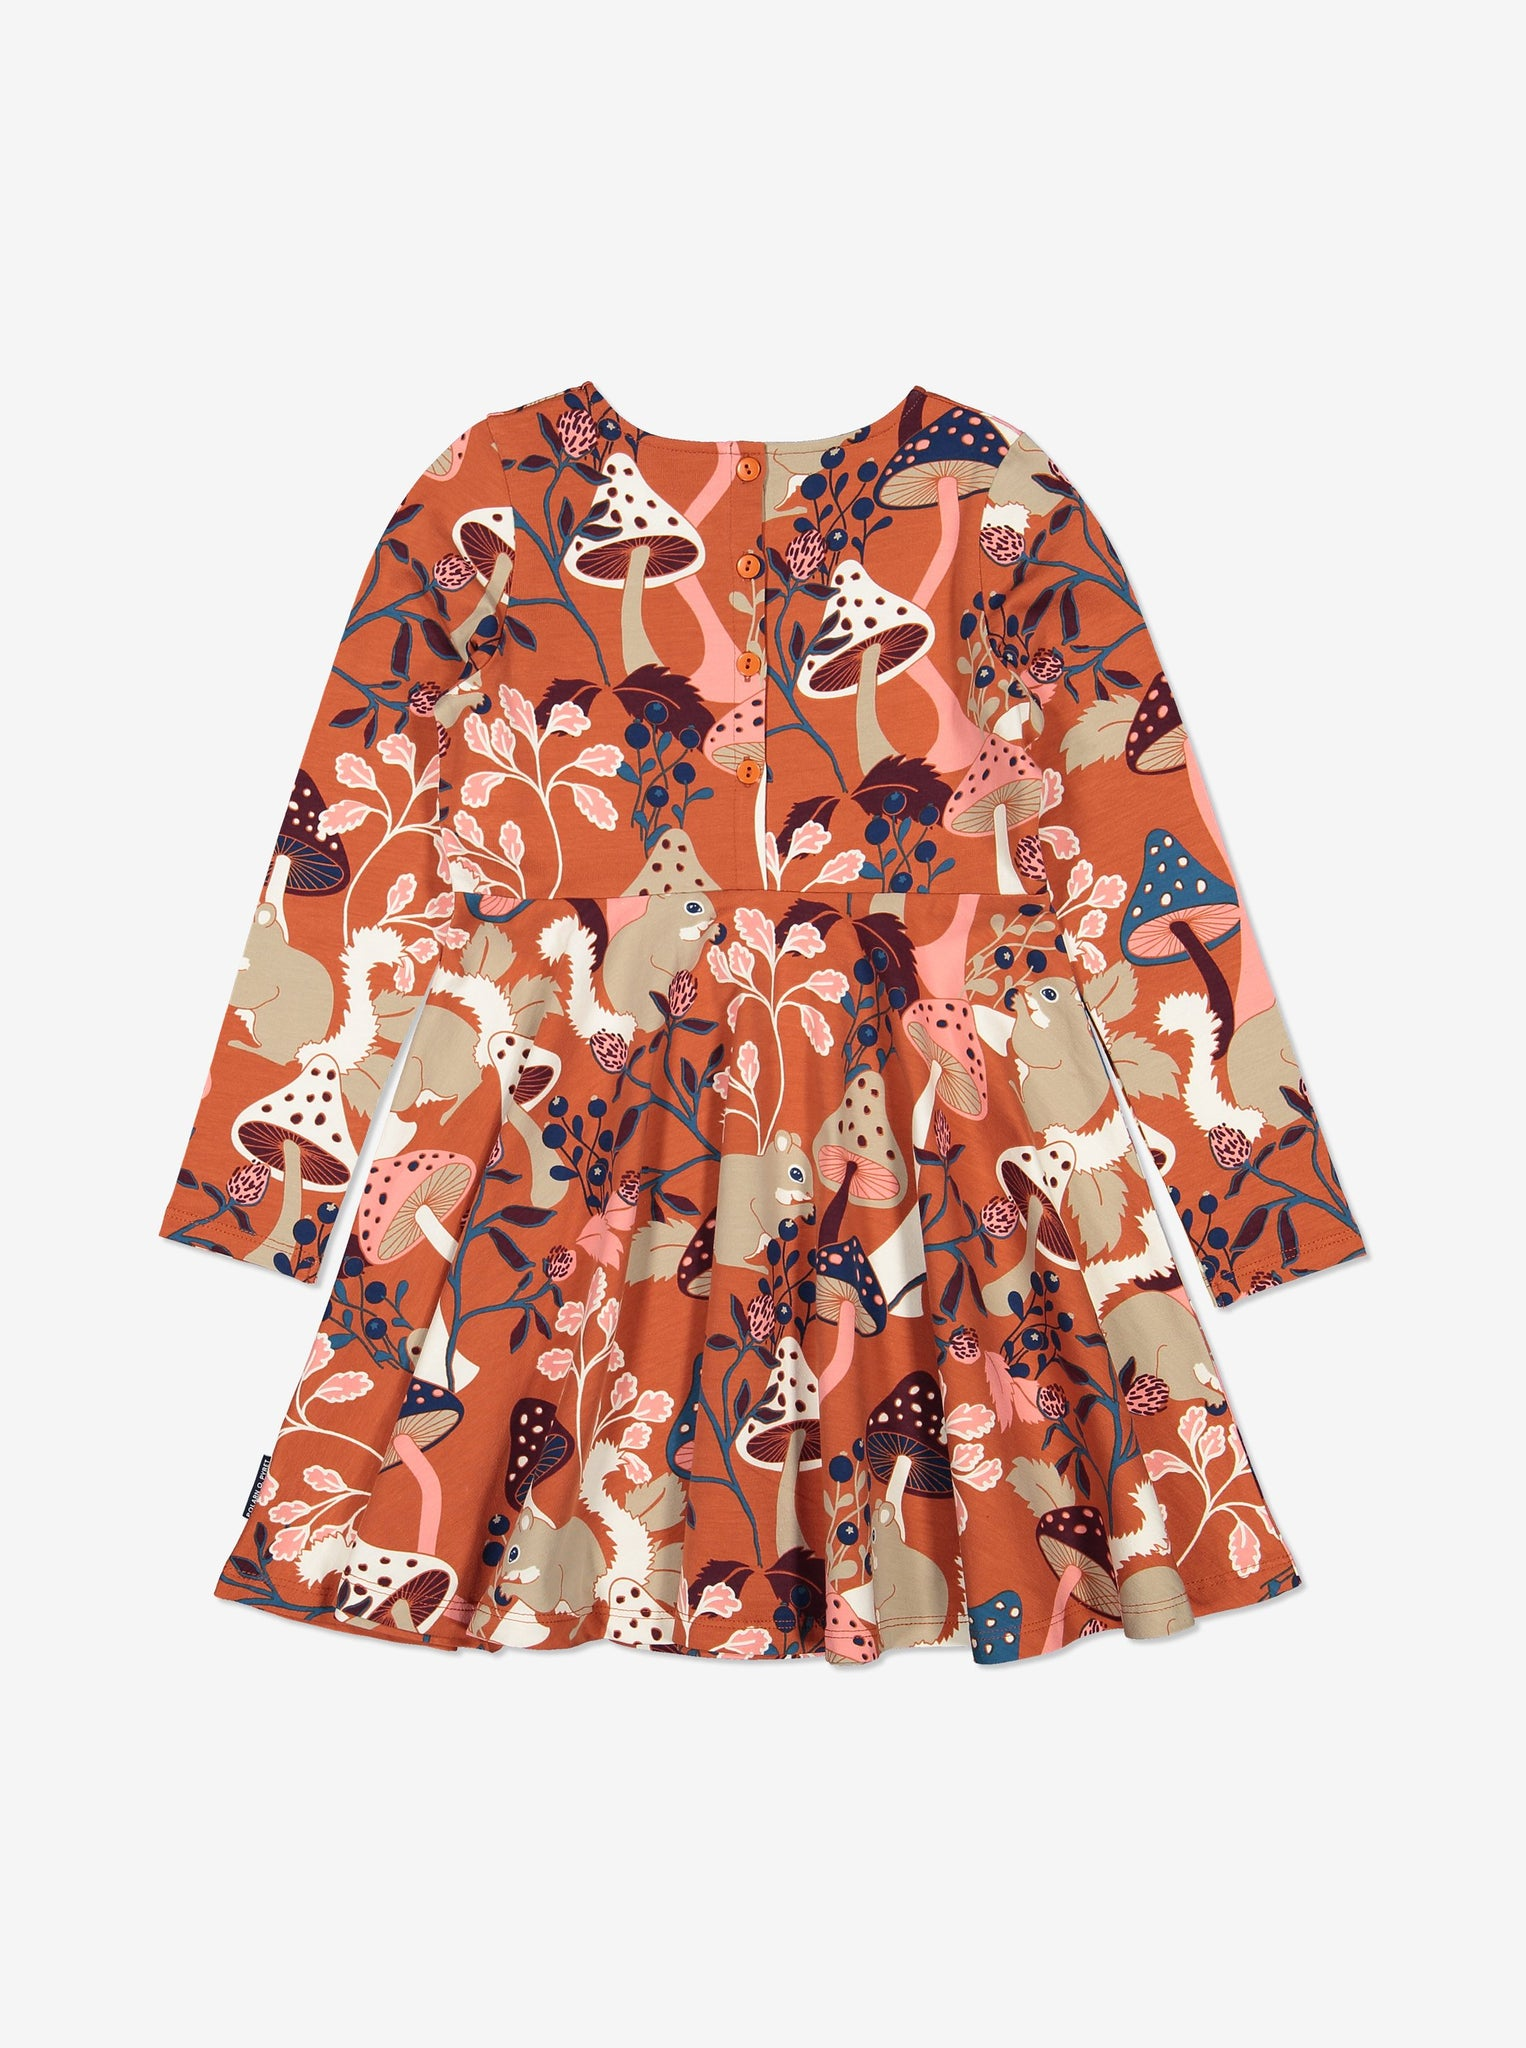 Nordic Print Kids Dress 1-6years Orange Girl